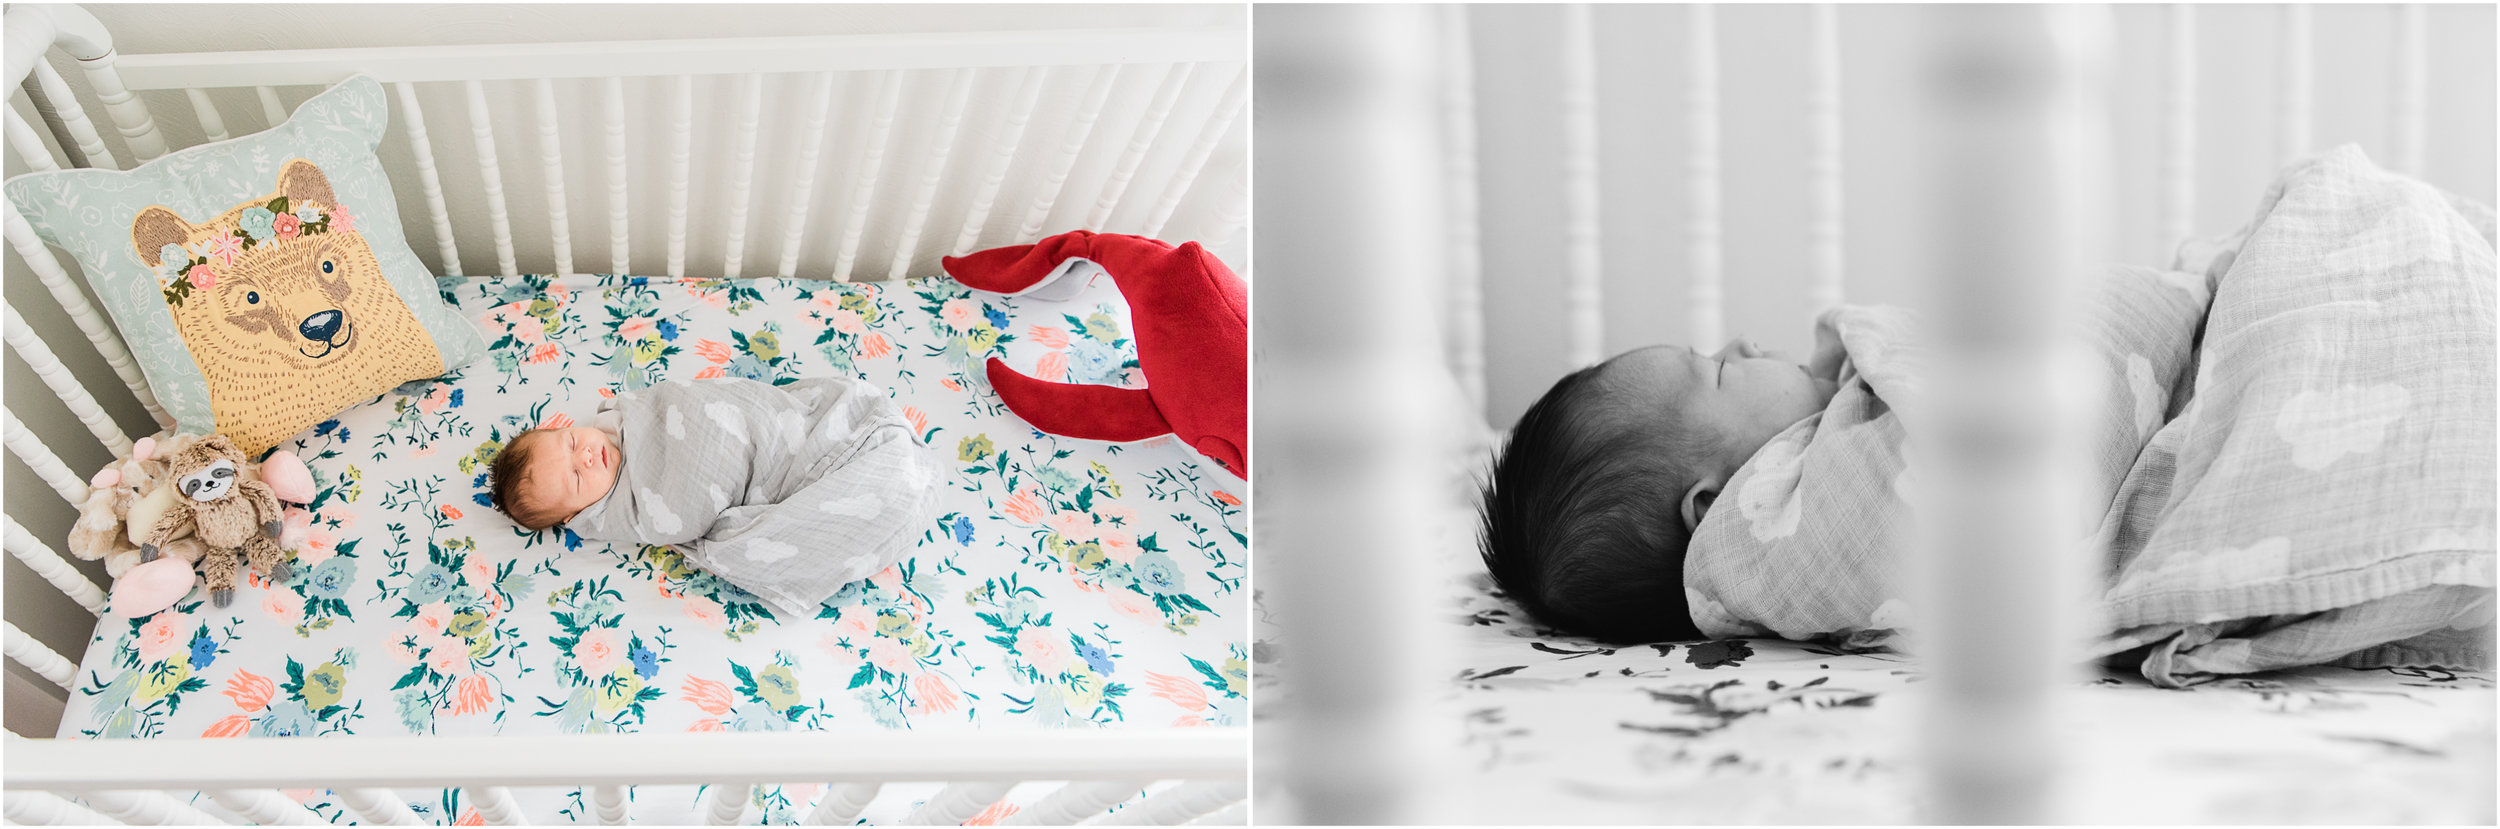 Pittsburgh PA lifestyle session, newborn photographer Mariah Fisher.jpg